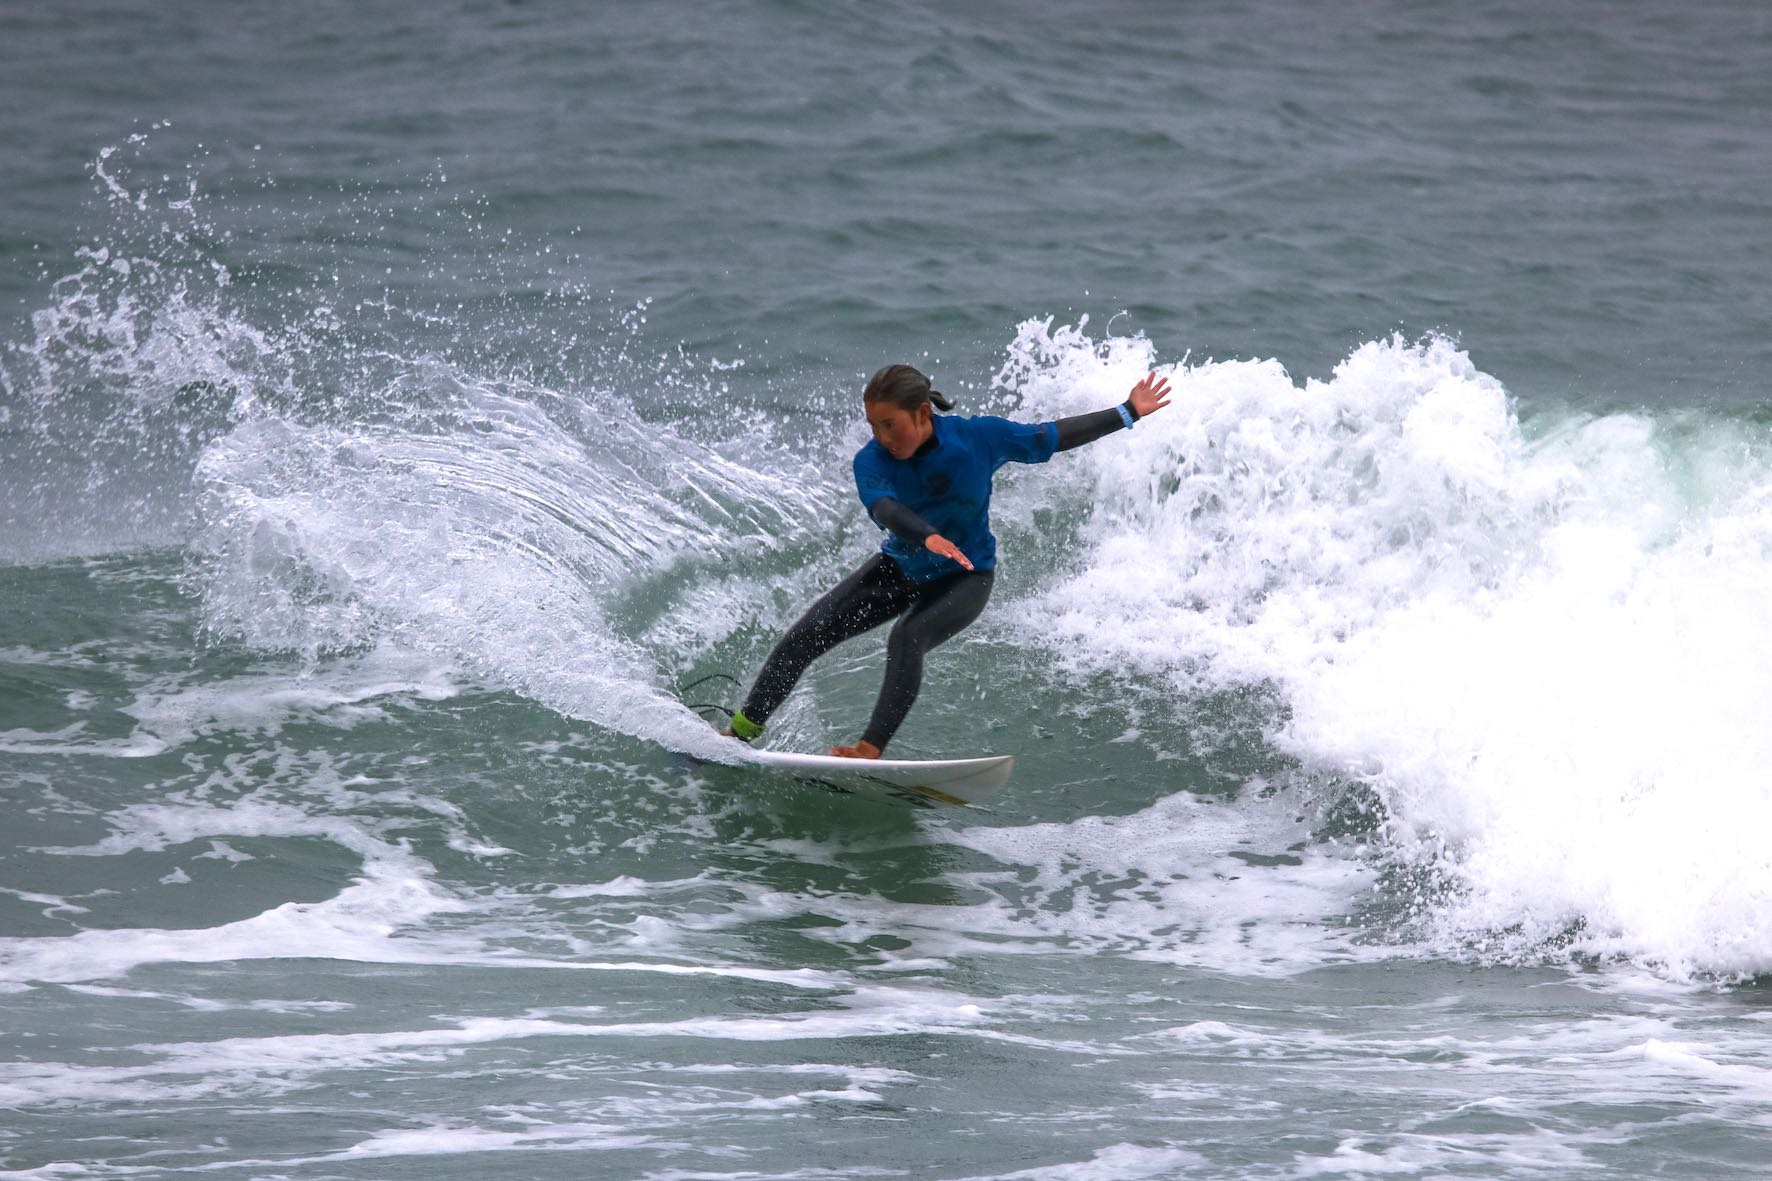 Minami Nonaka surfing her way to victory at the Jordy Smith Cape Town Surf Pro